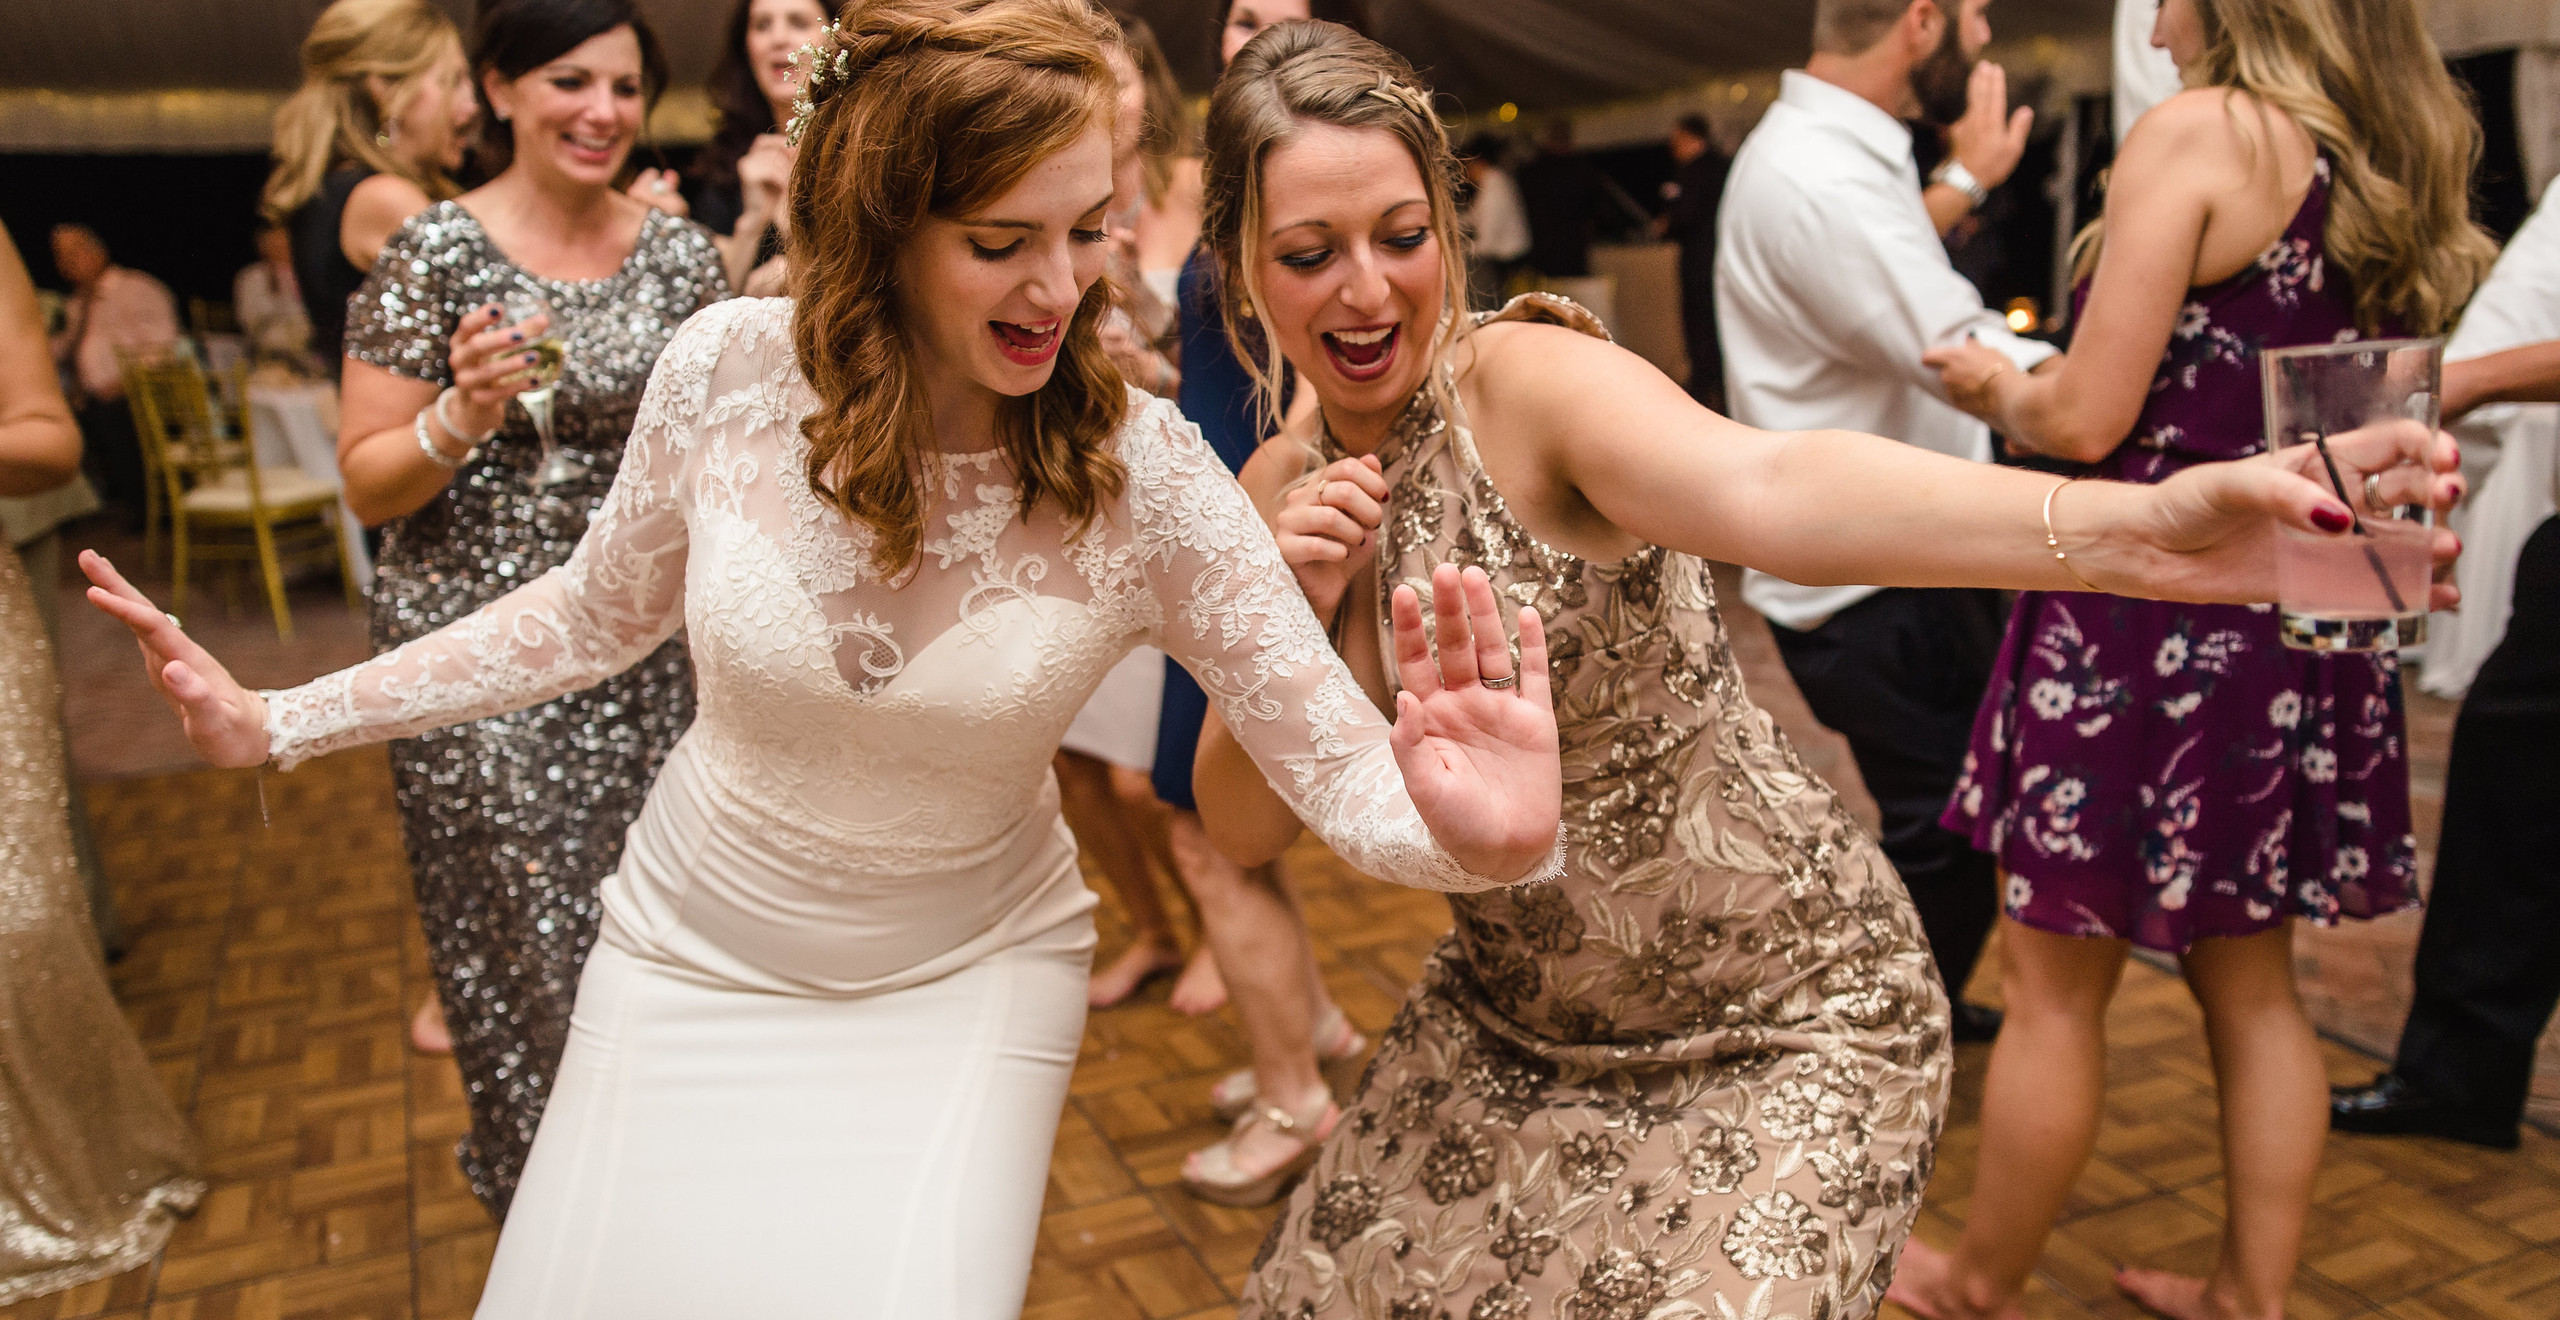 bride dancing with friend at wedding